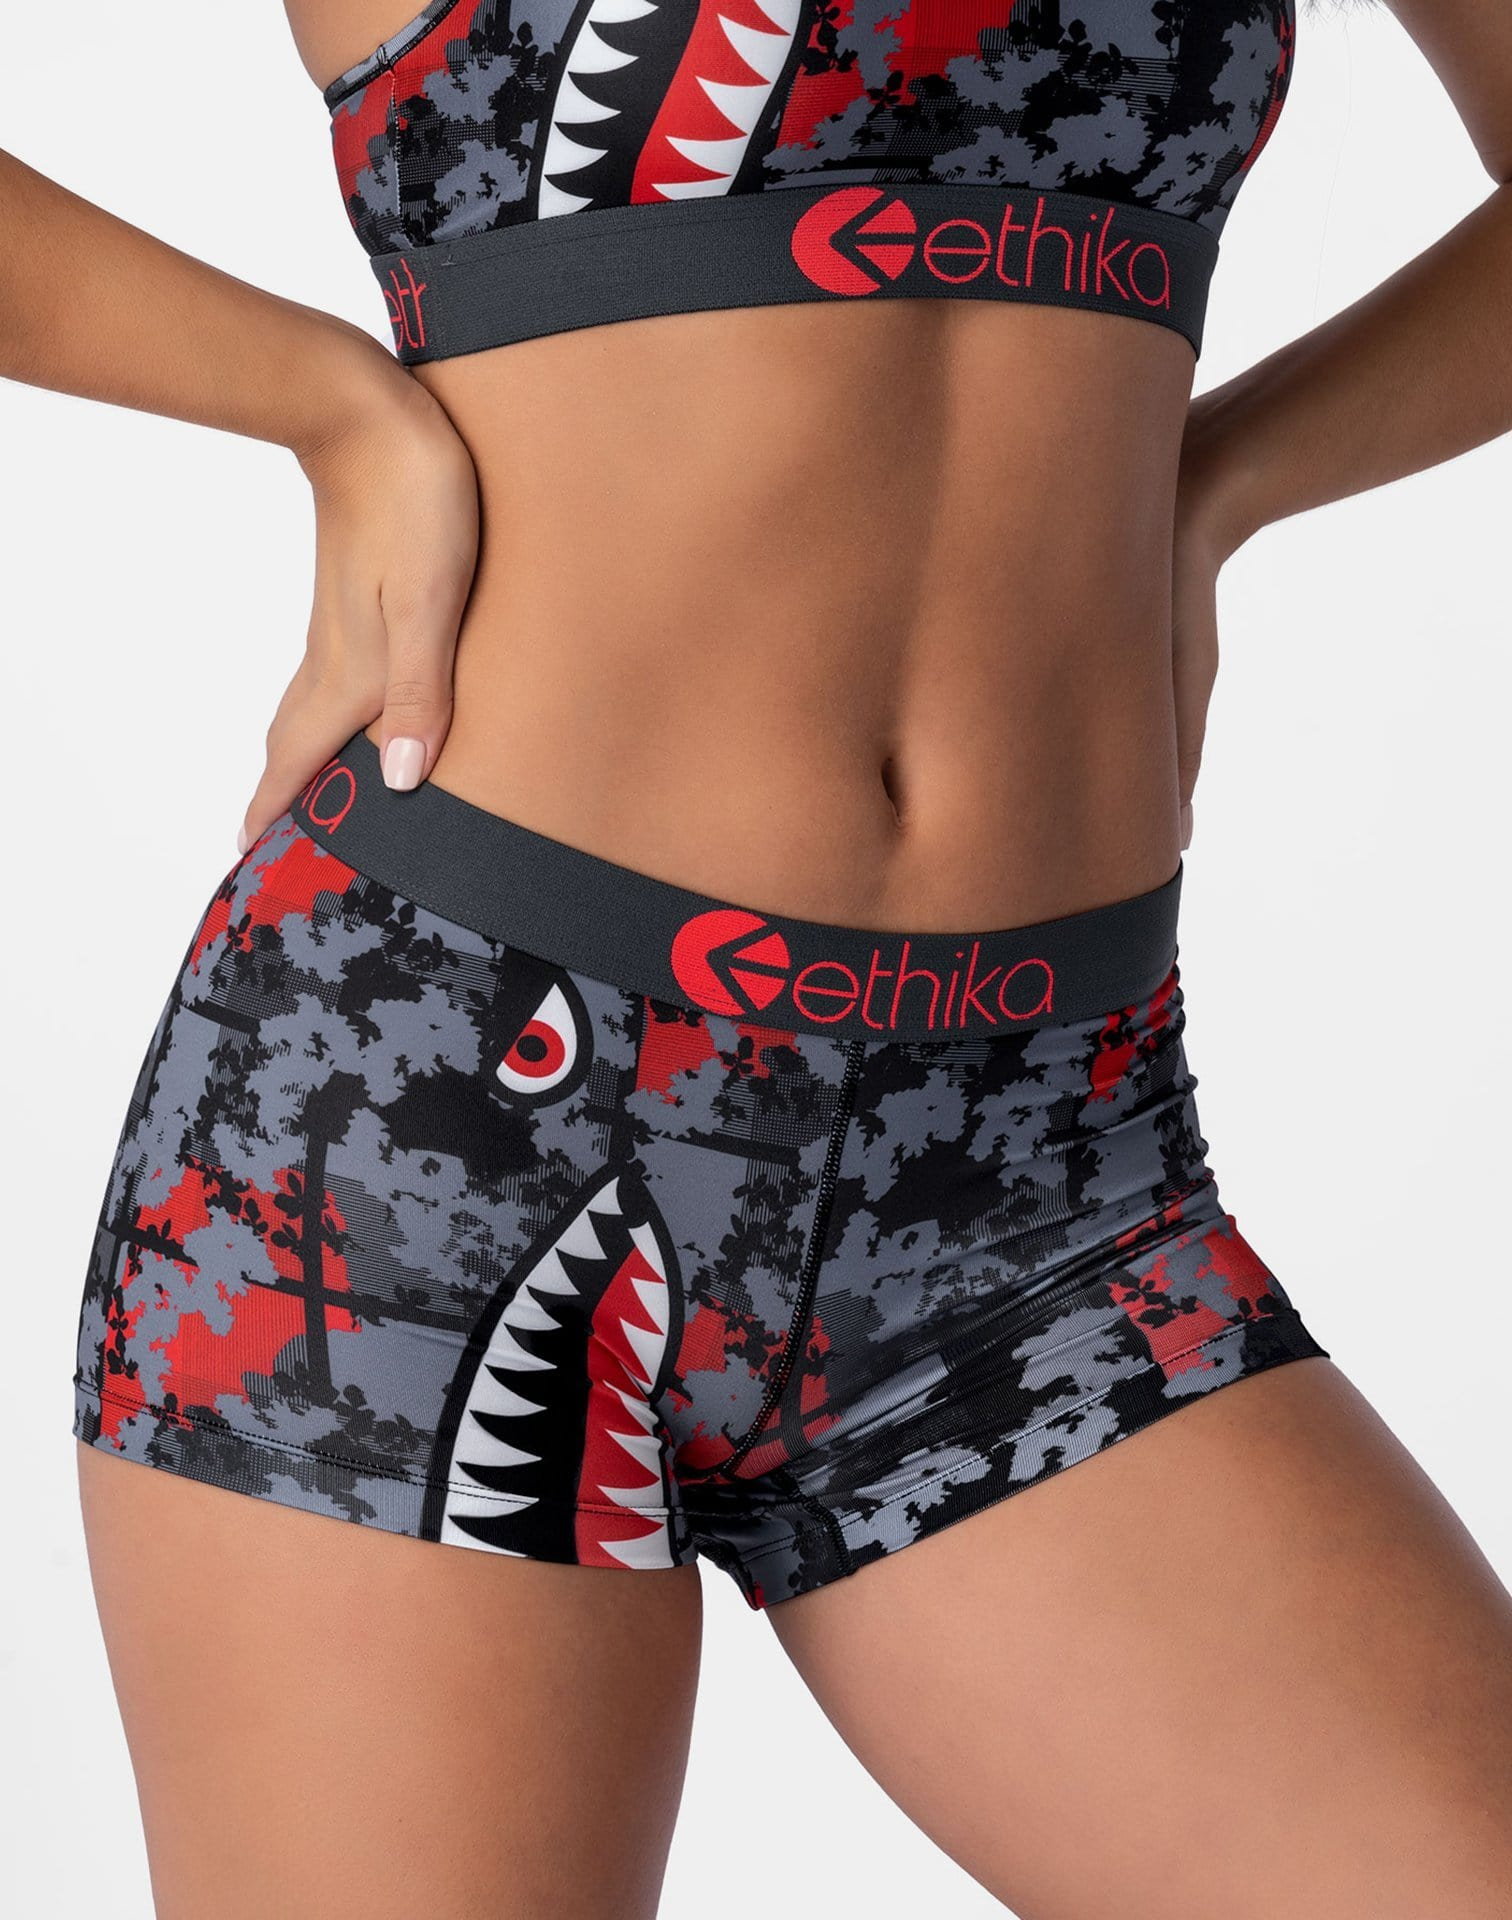 Ethika Women's Bomber Boy Shorts